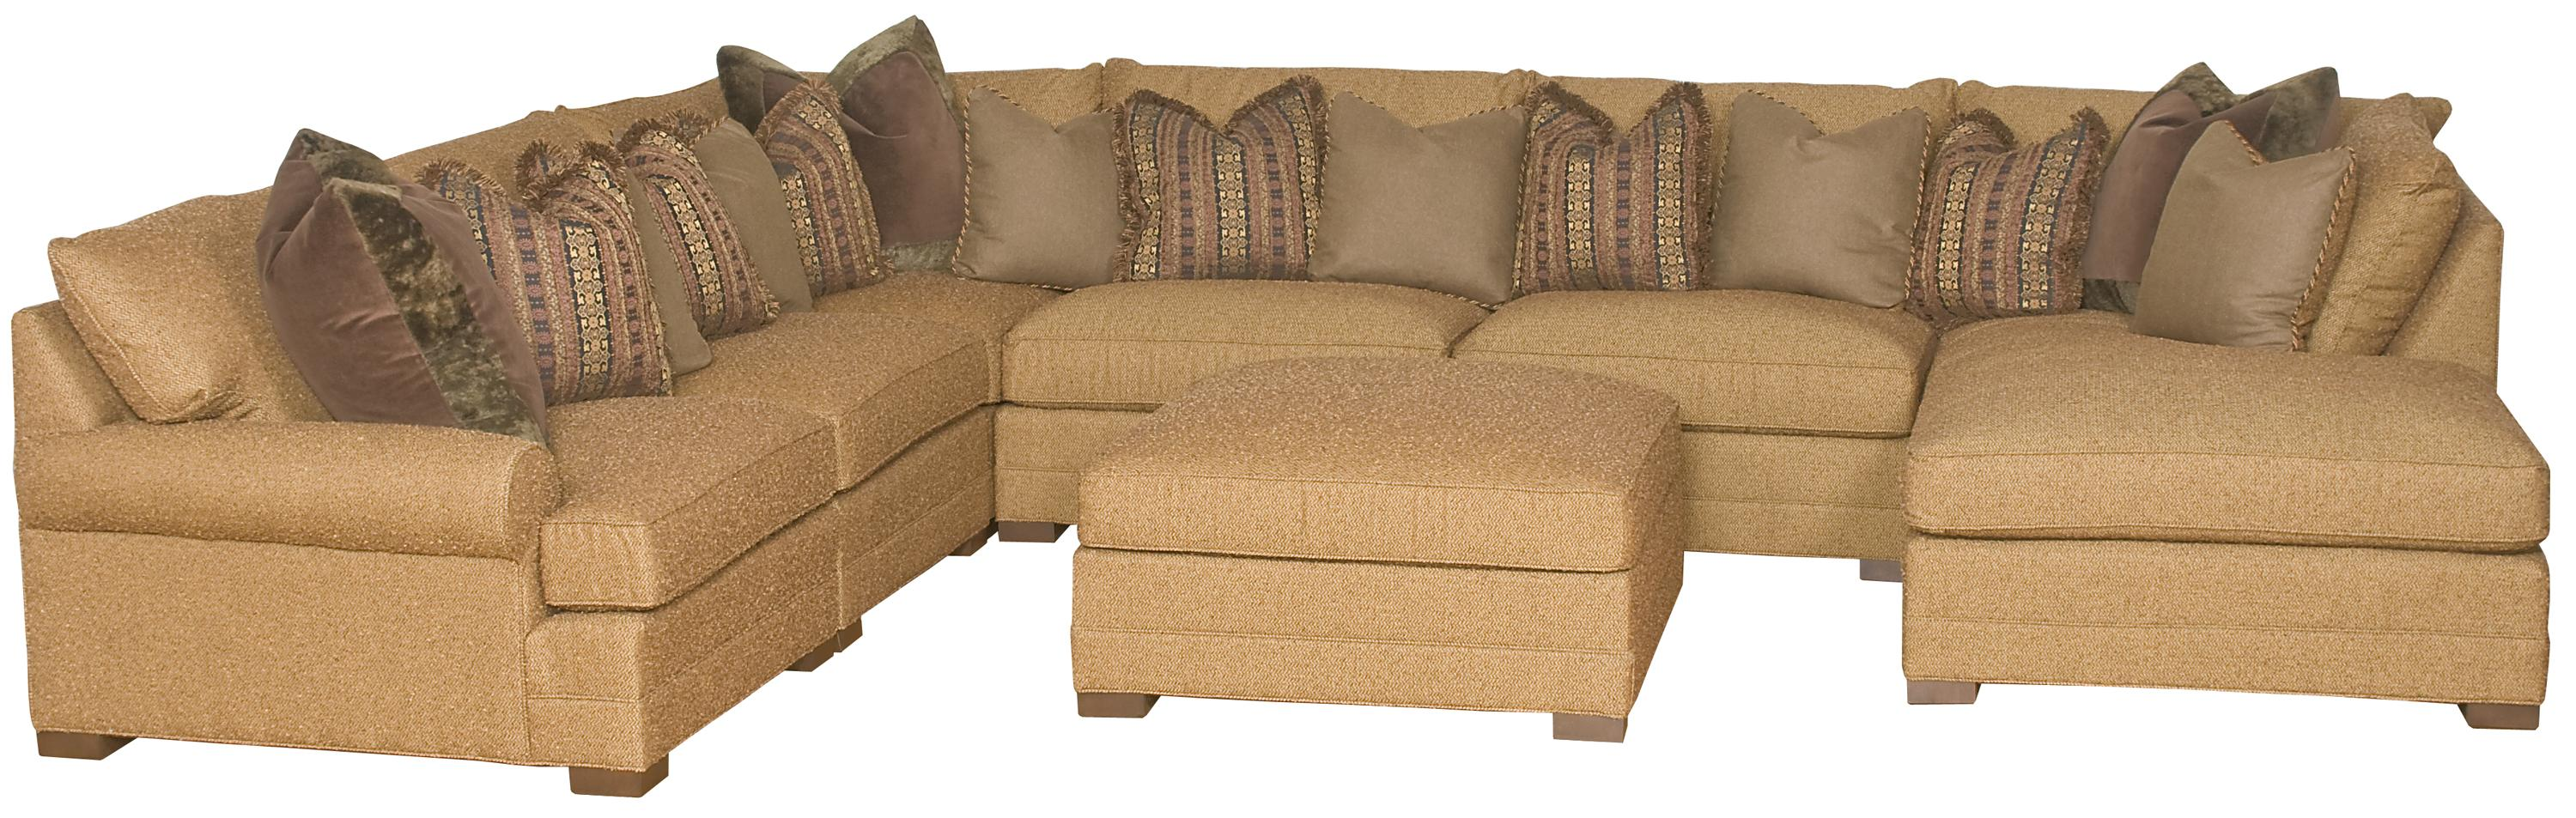 Transitional U Shaped Sectional Sofa by King Hickory